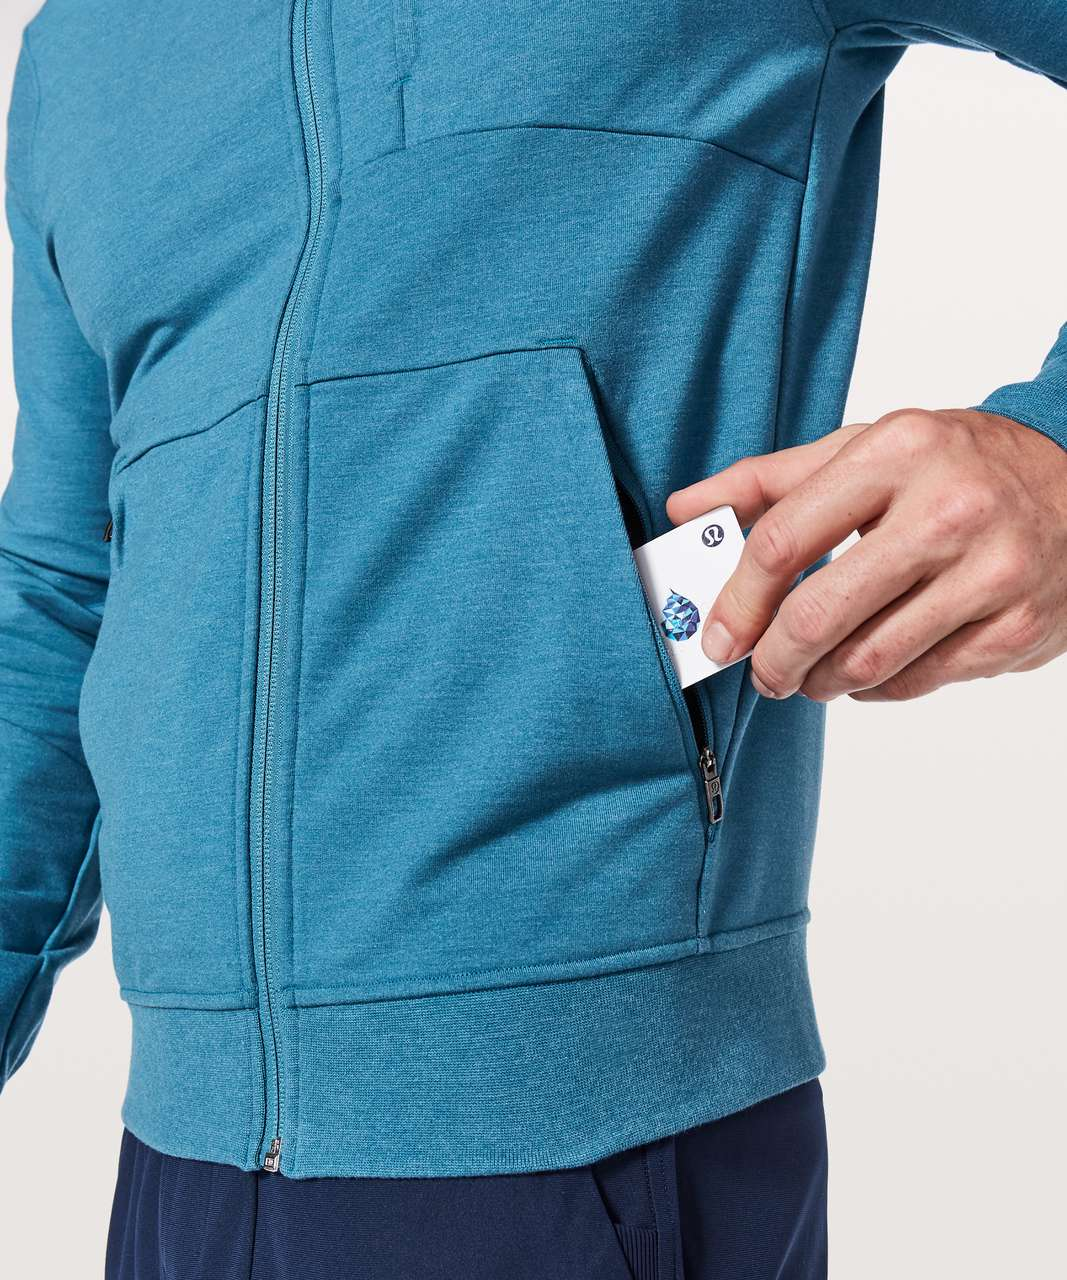 Lululemon City Sweat Zip Hoodie - Heathered Pewter Blue